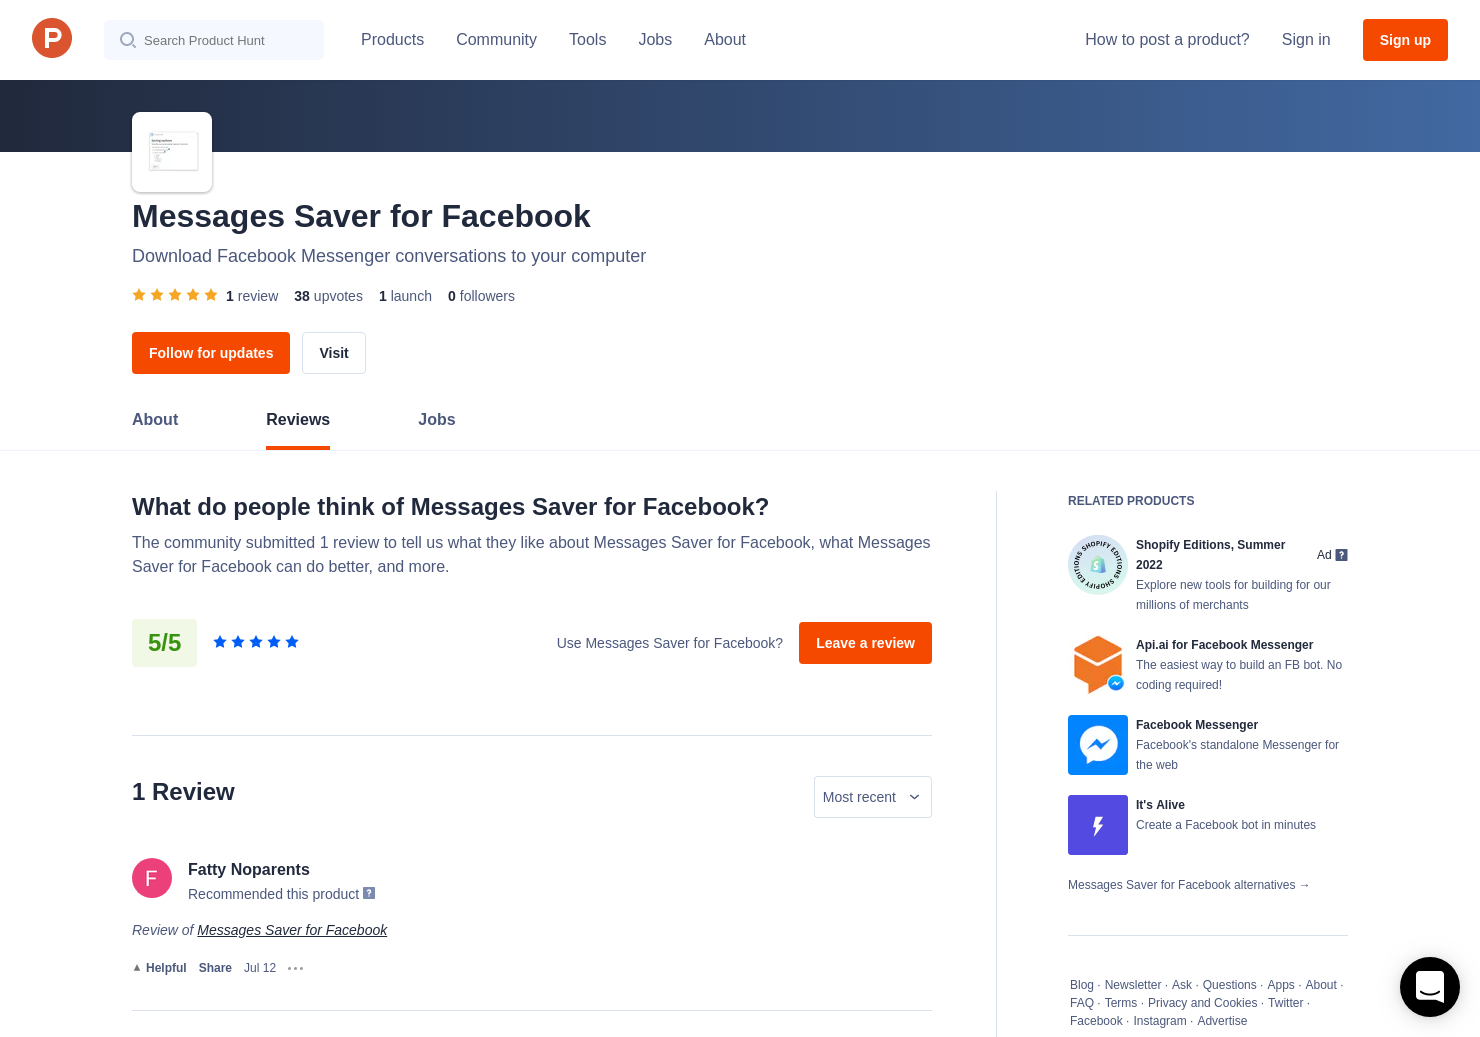 Messages Saver for Facebook Reviews - Pros, Cons and Rating